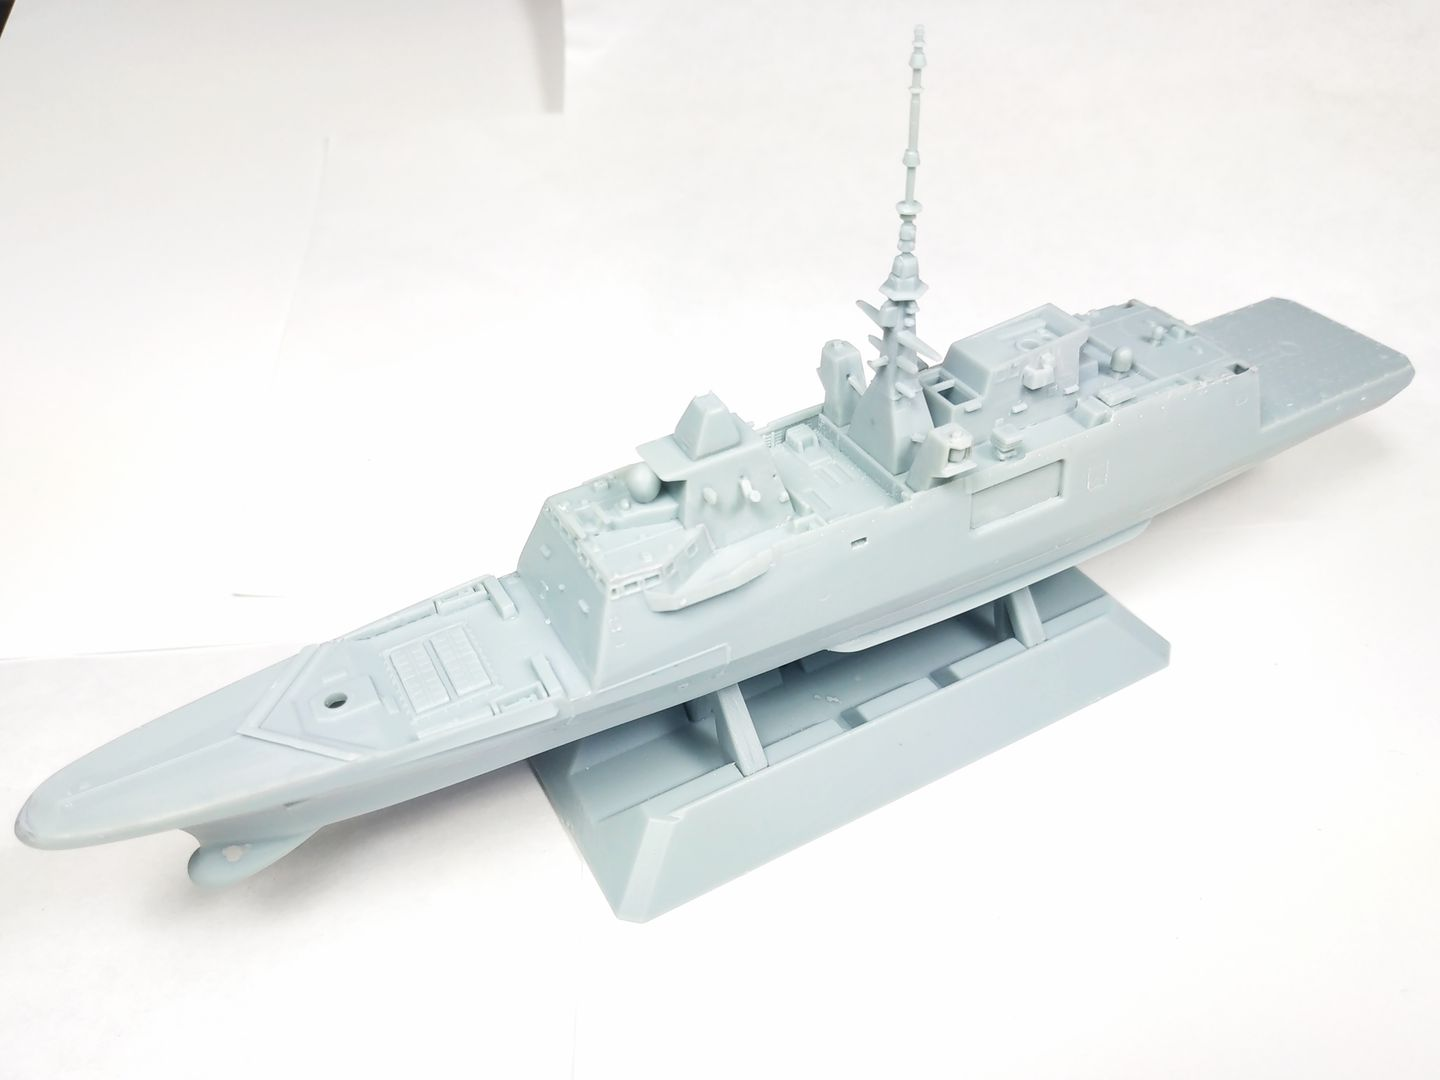 1/700 FREMM - Freedom Model Kit IMG_20190705_202650_zpsrnxbm3dt